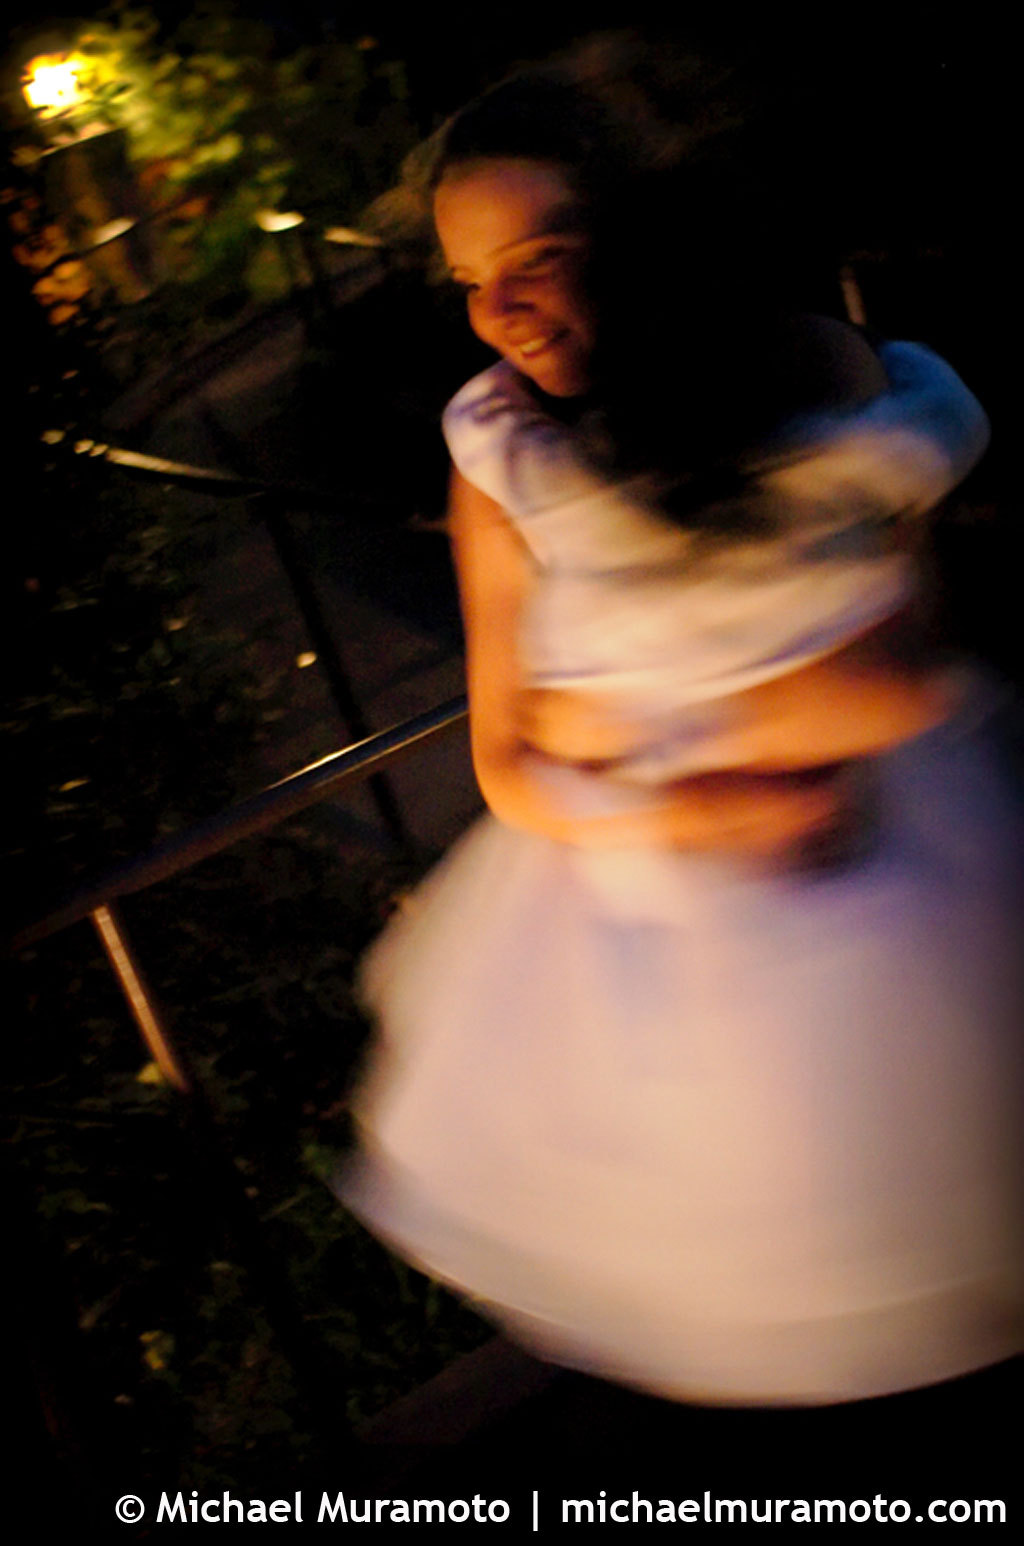 Dancing, Children, Sausalito, Michael muramoto photography, Motion